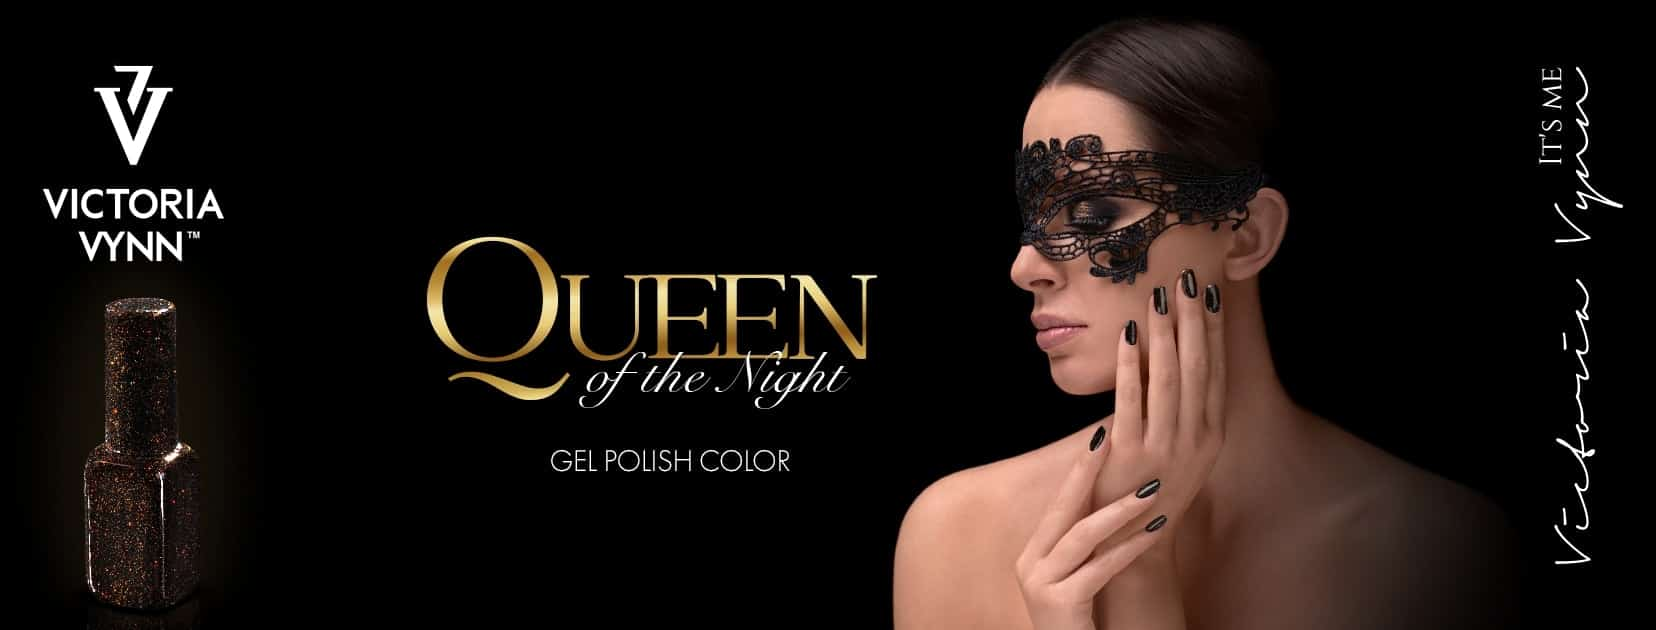 Victoria Vynn Salon Gellak Gel Polish Color Queen Of The Night